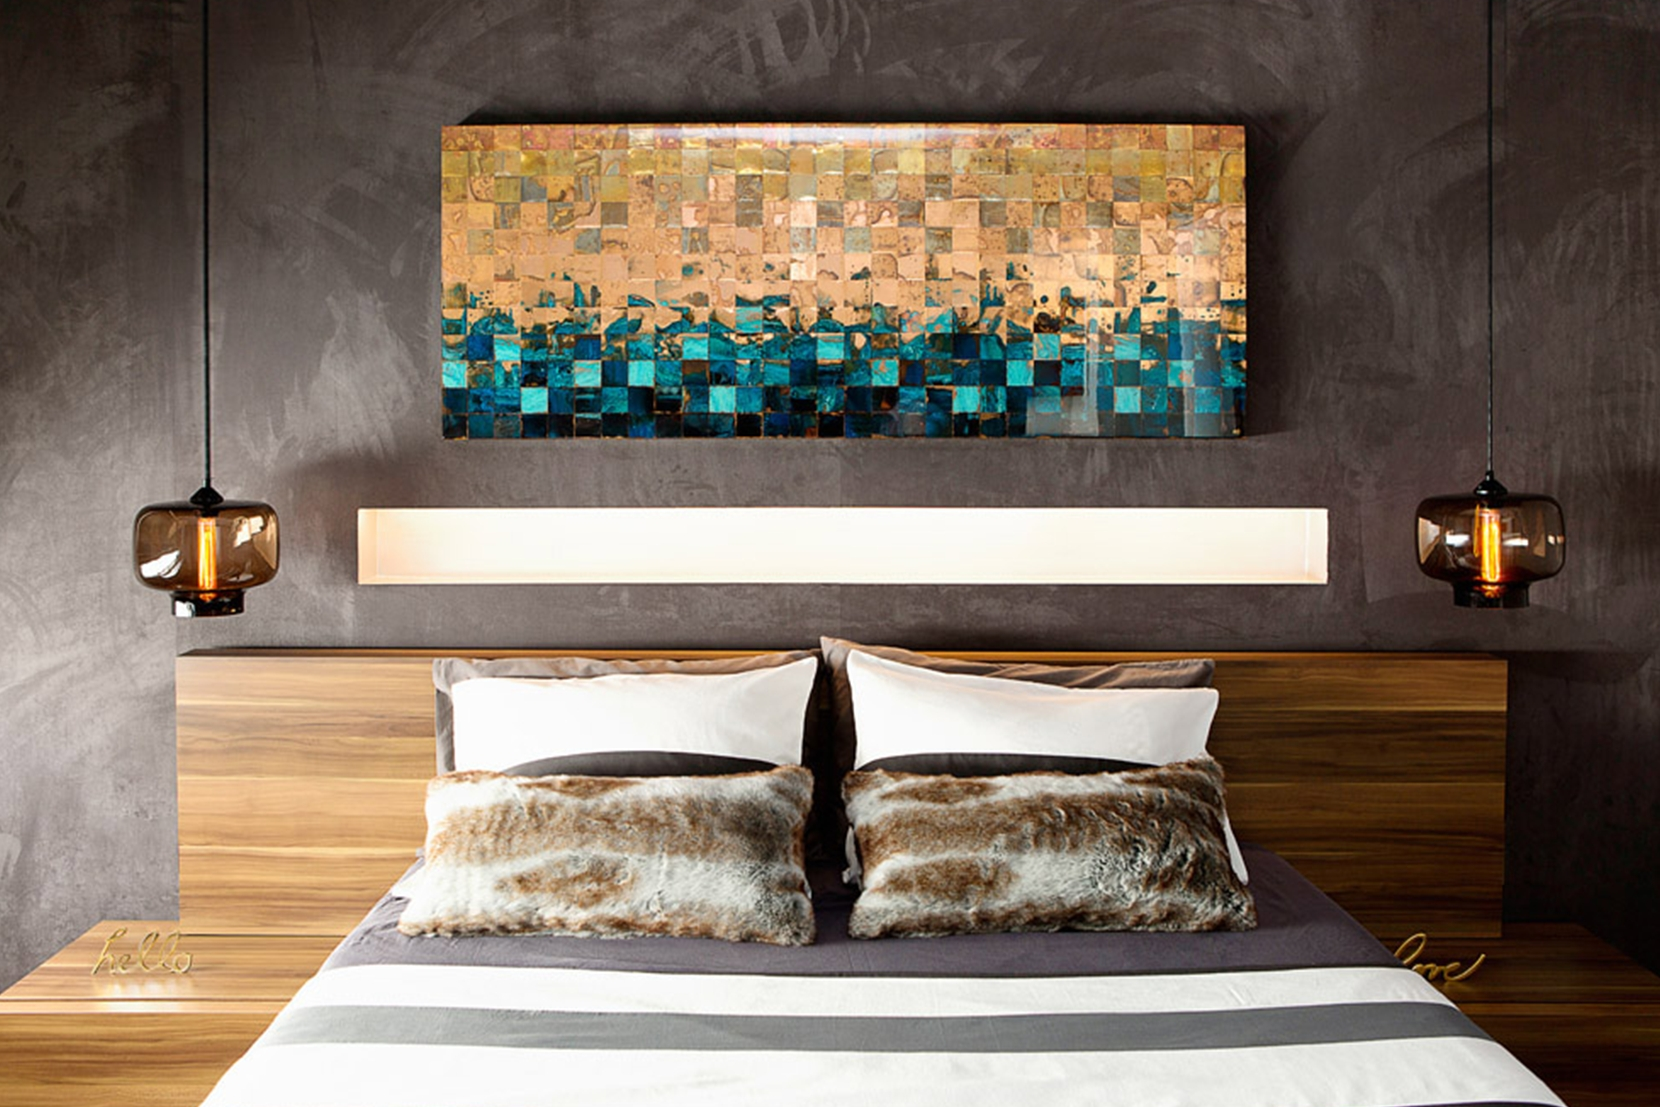 Modern Bedroom Lighting pertaining to How to Decorate Modern Bedroom with Lighting Design Ideas - modern bedroom with lighting